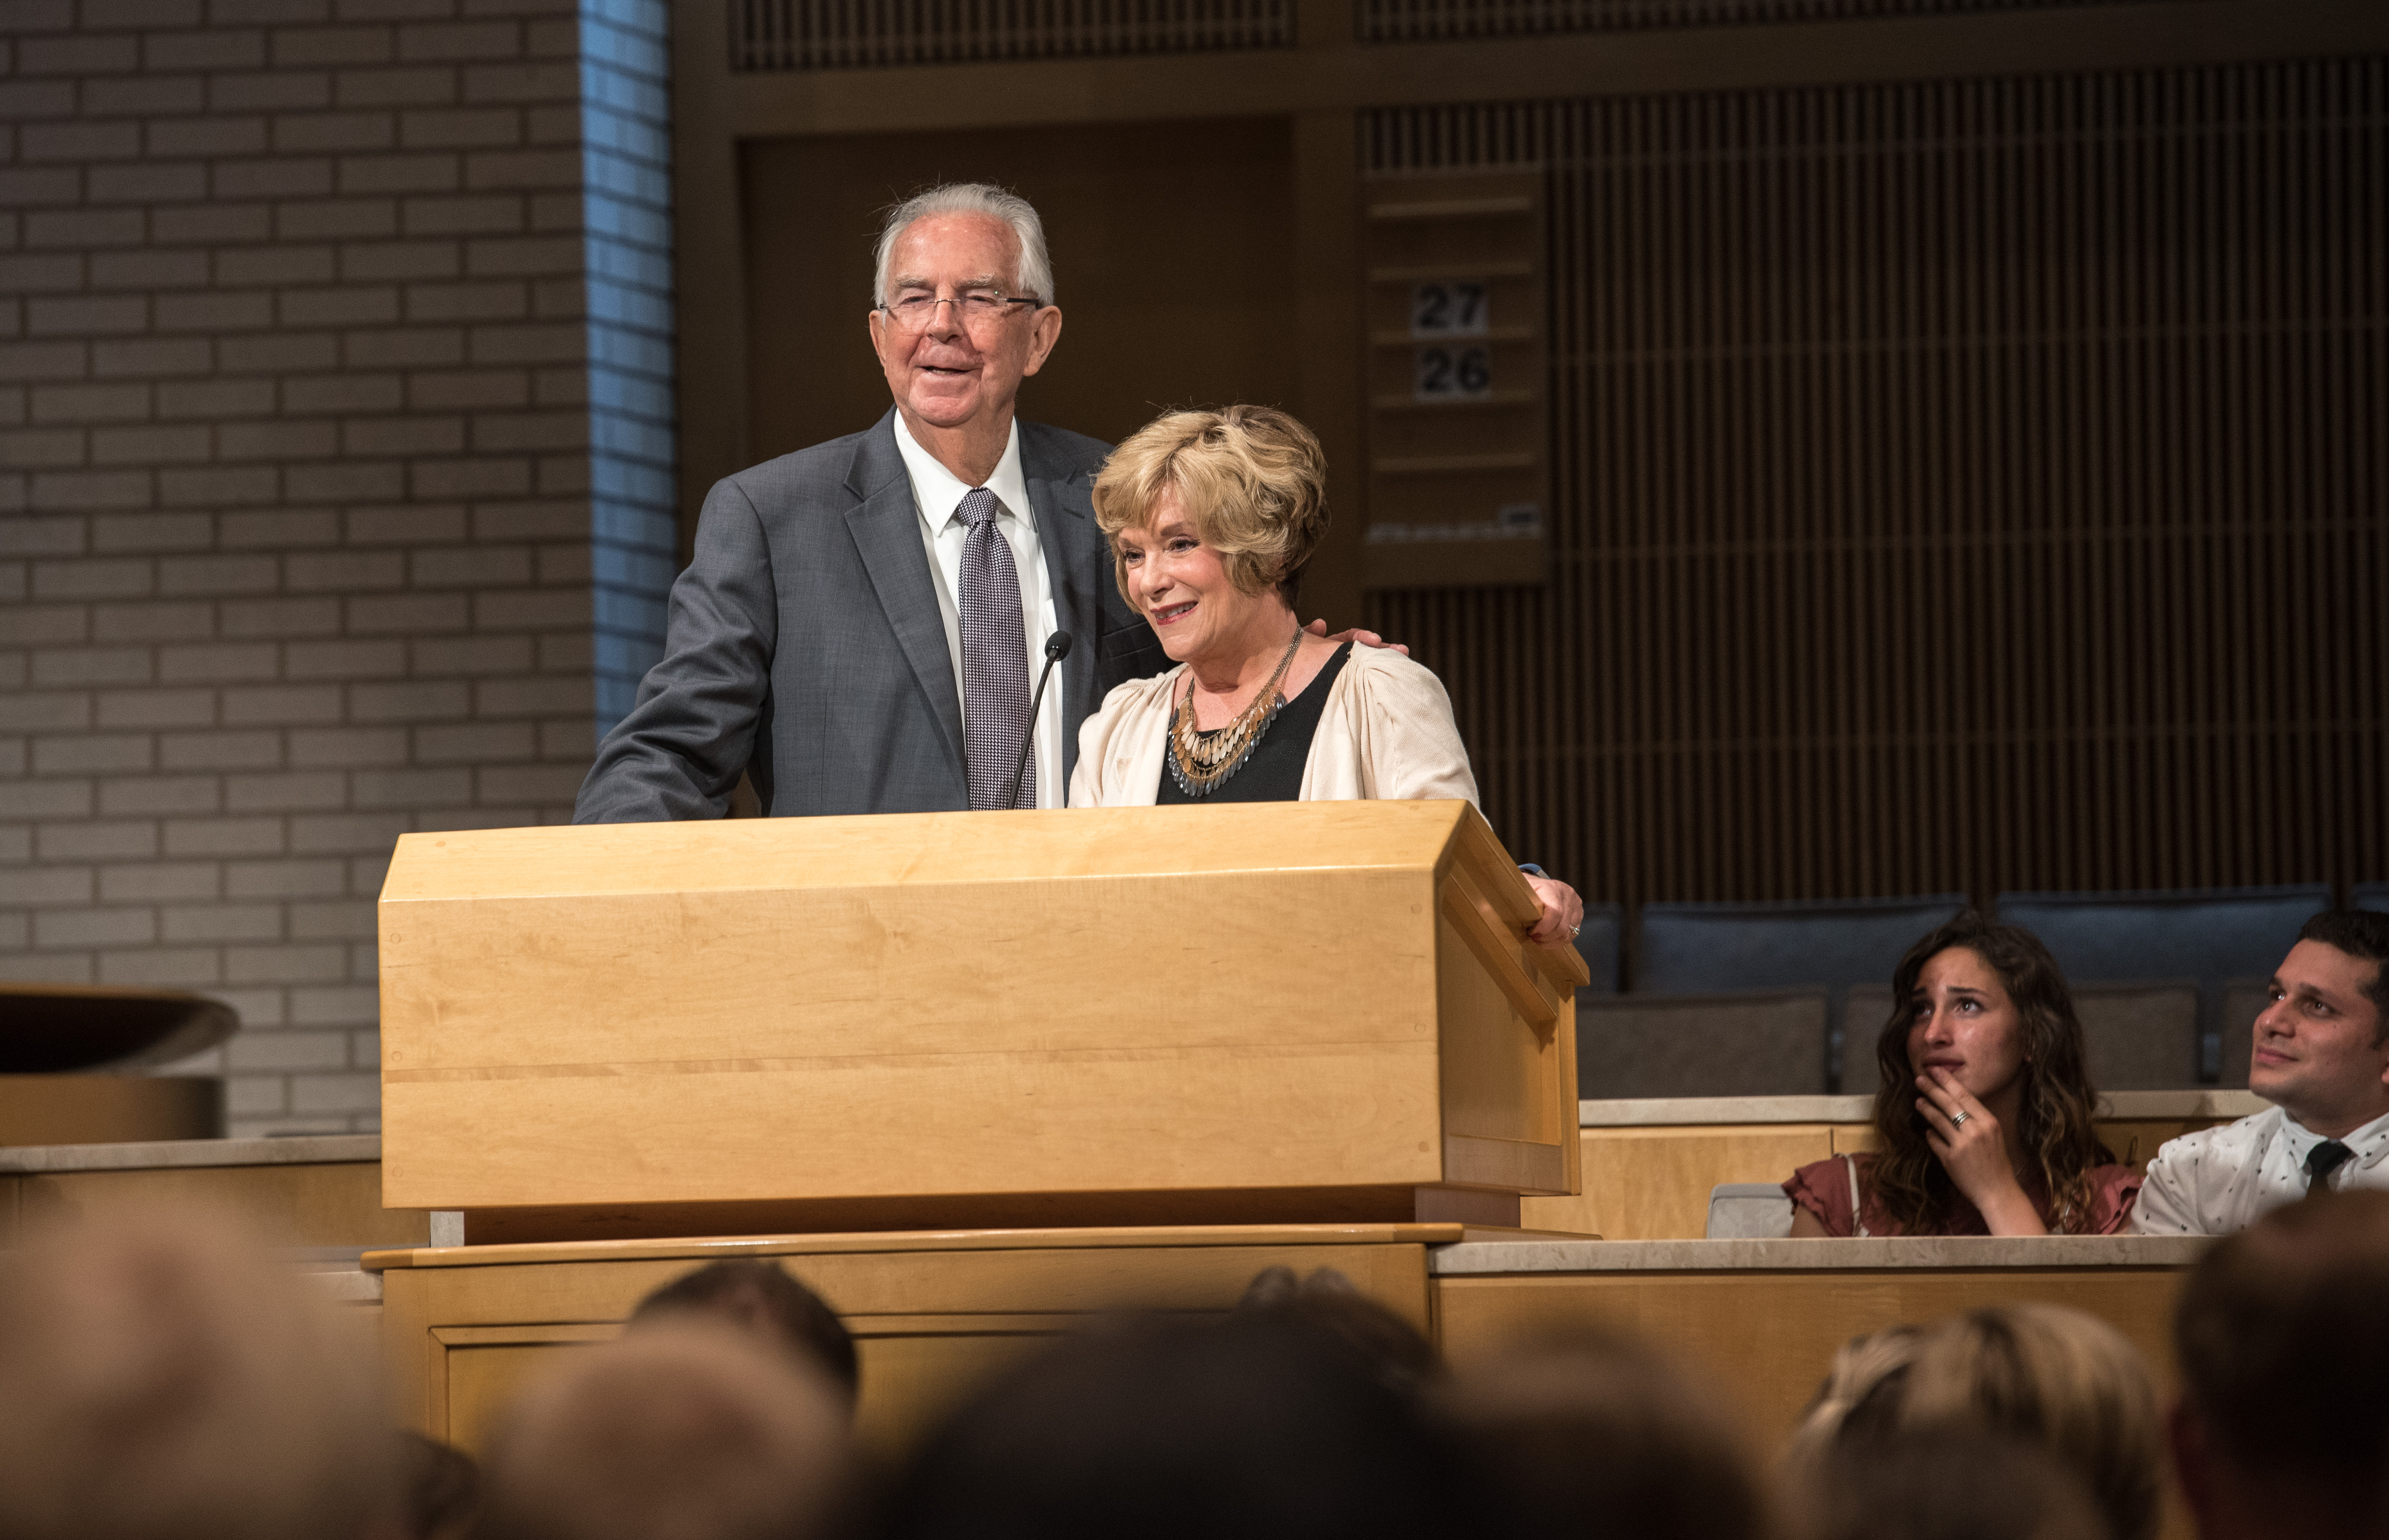 George D Durrant and Susan Easton Black speak during the closing session of BYU-Idaho Education Week.